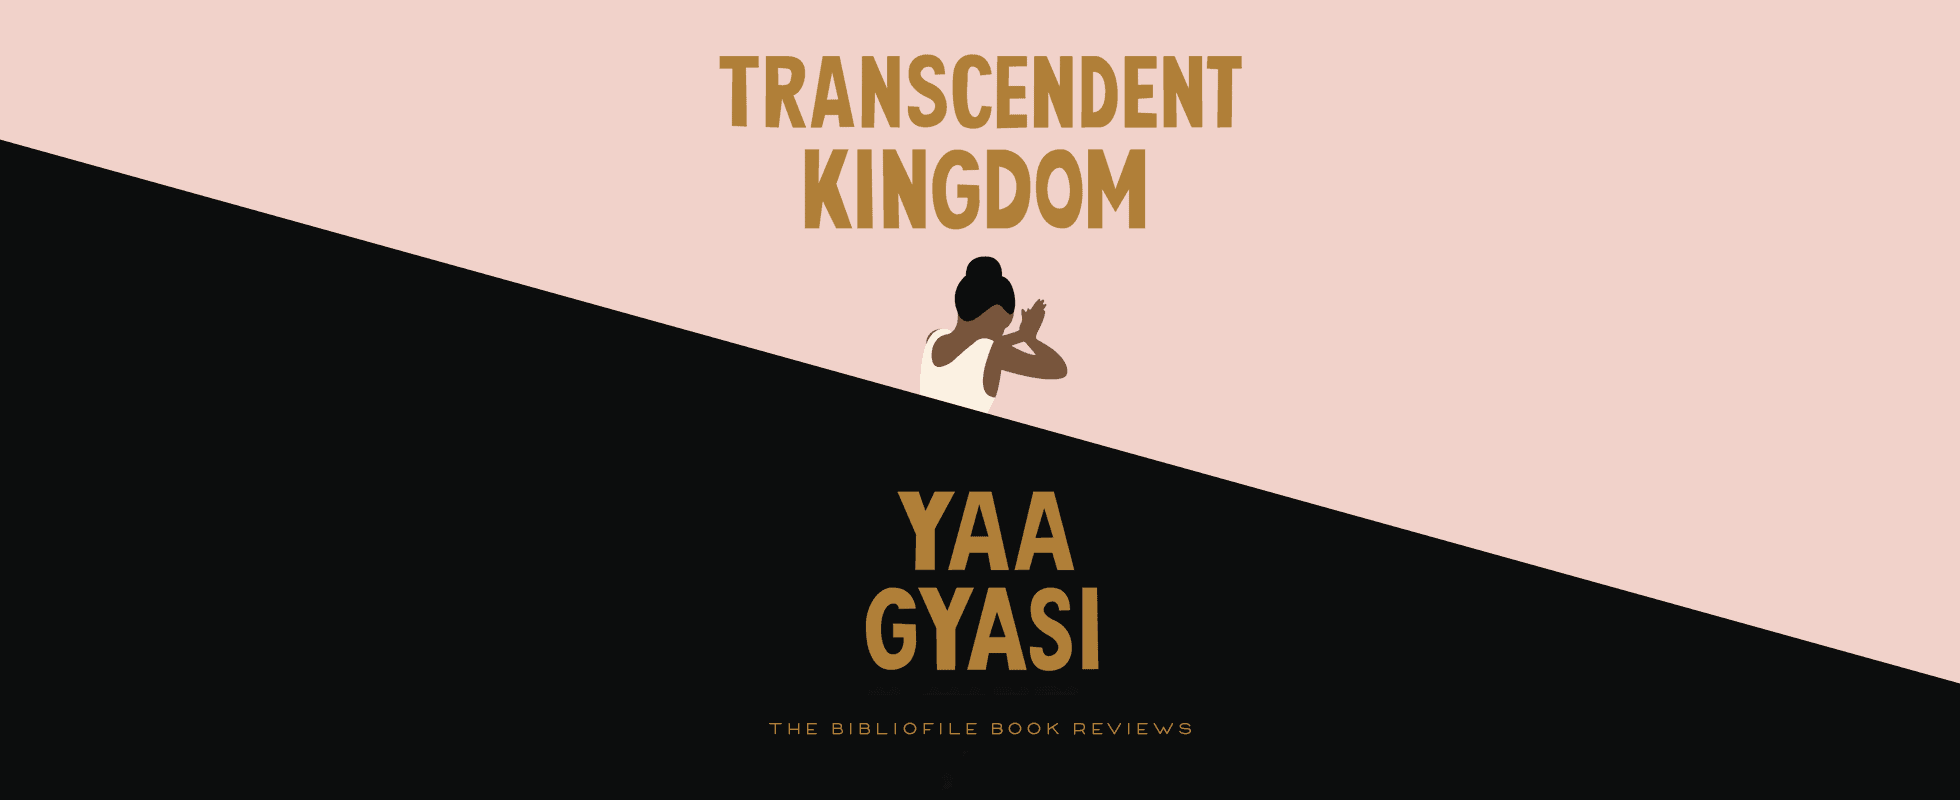 Transcendent Kingdom by Yaa Gyasi - Book Summary, Analysis, Chapter-by-Chapter Summary, Detailed Plot Synopsis, Book Review